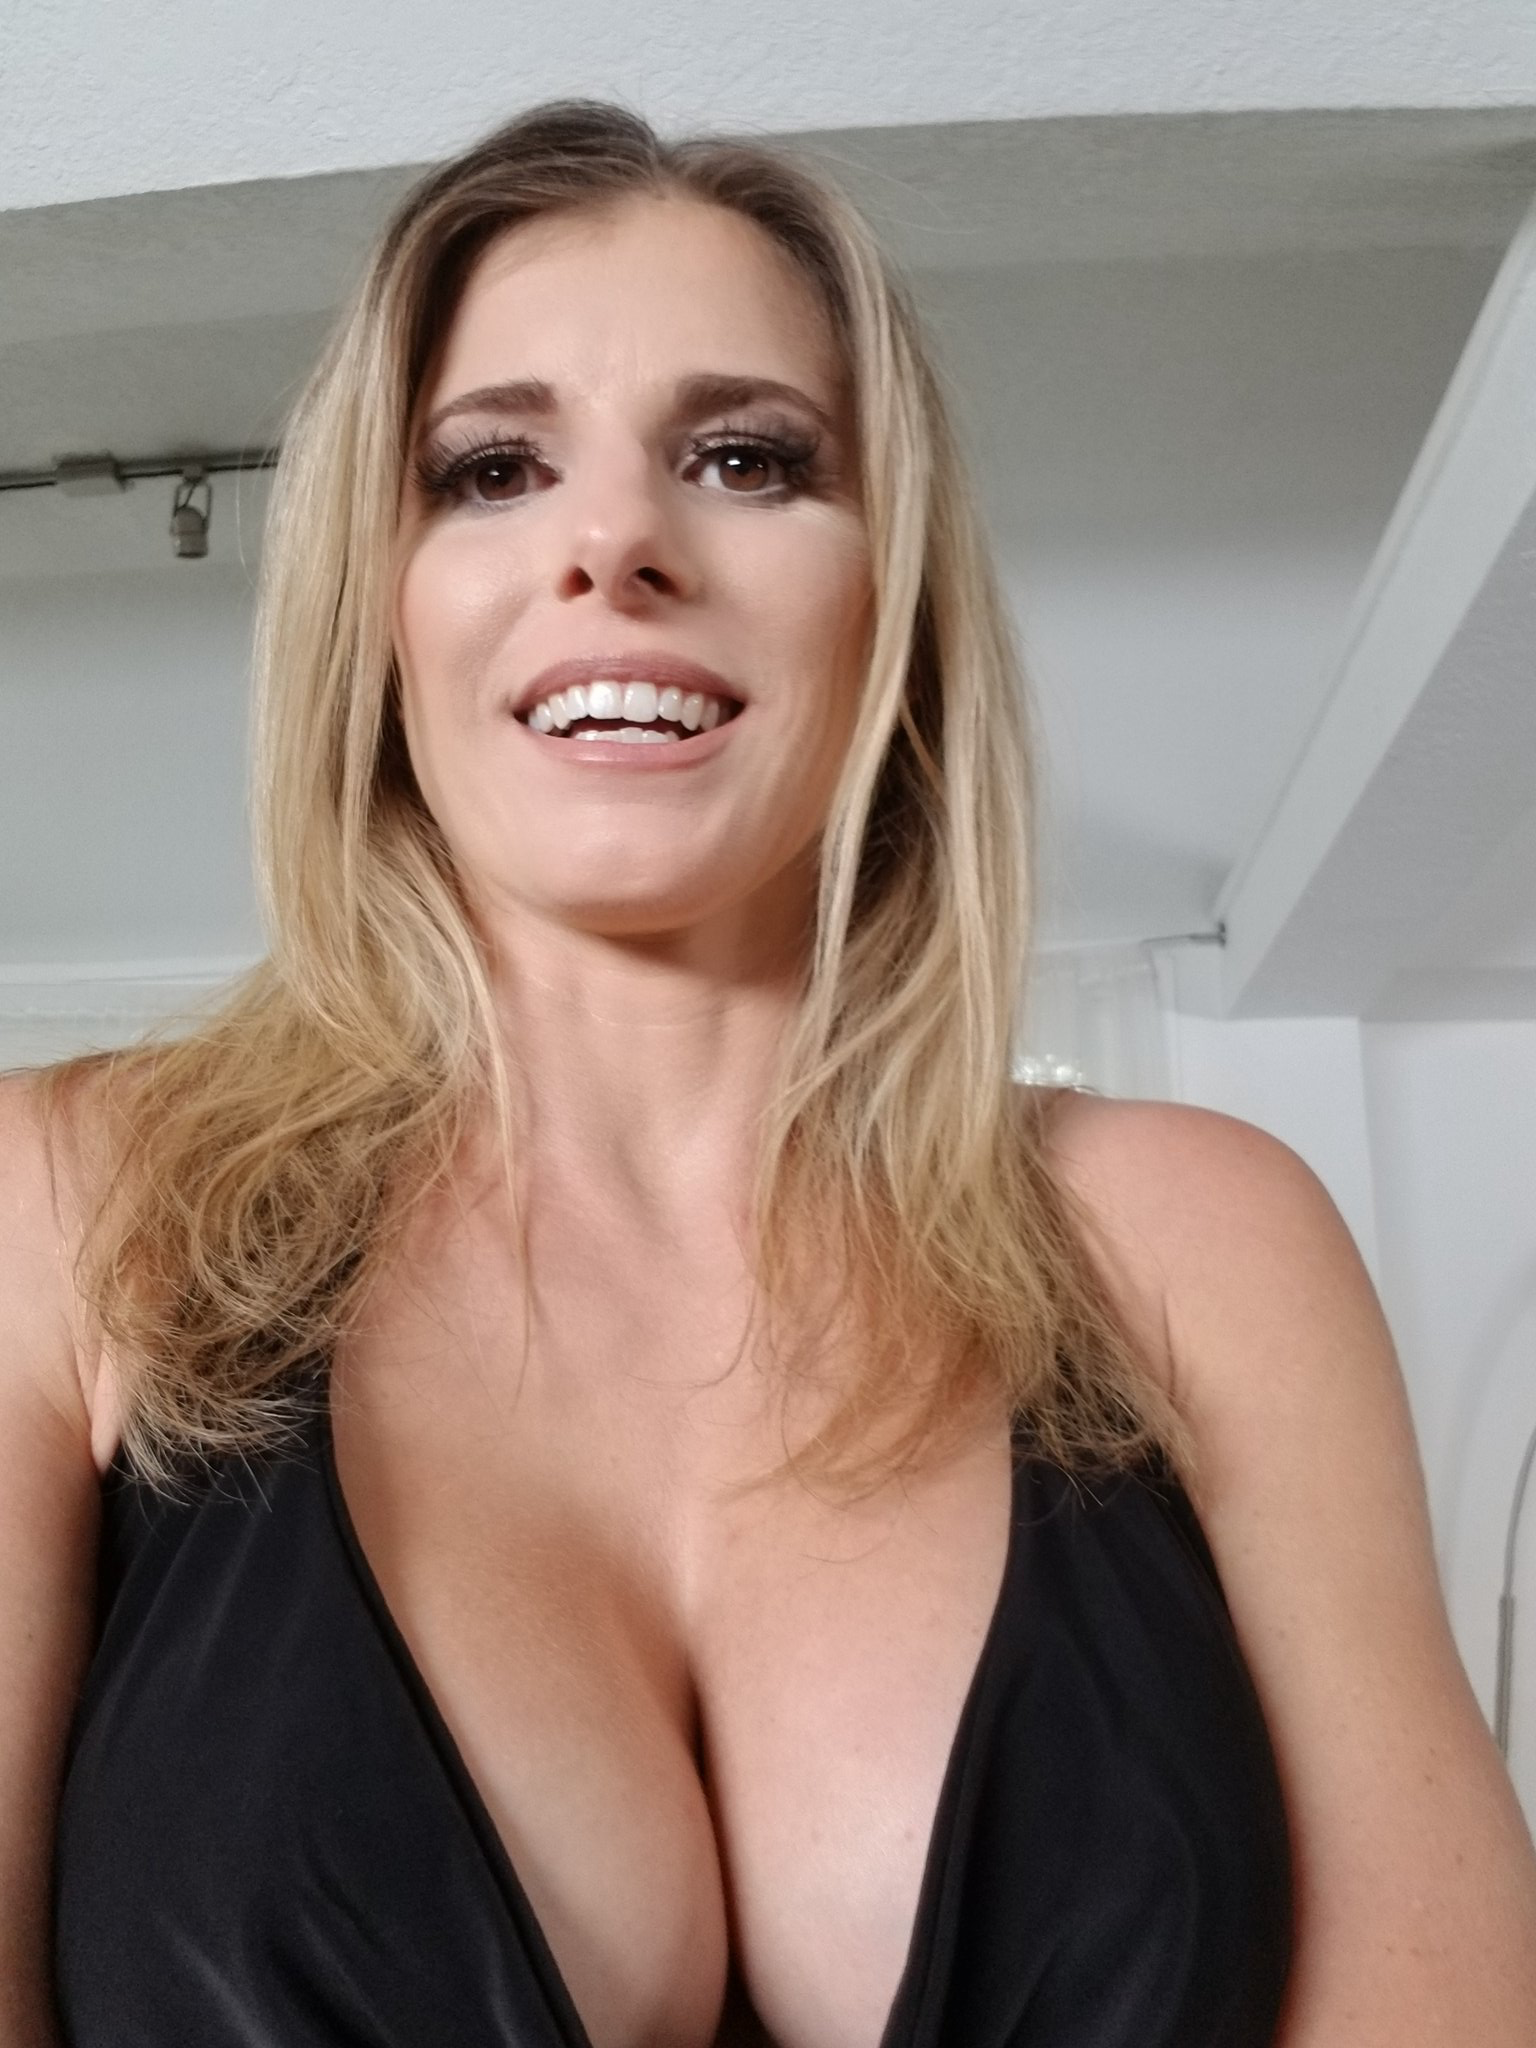 Claudia marie rough sex